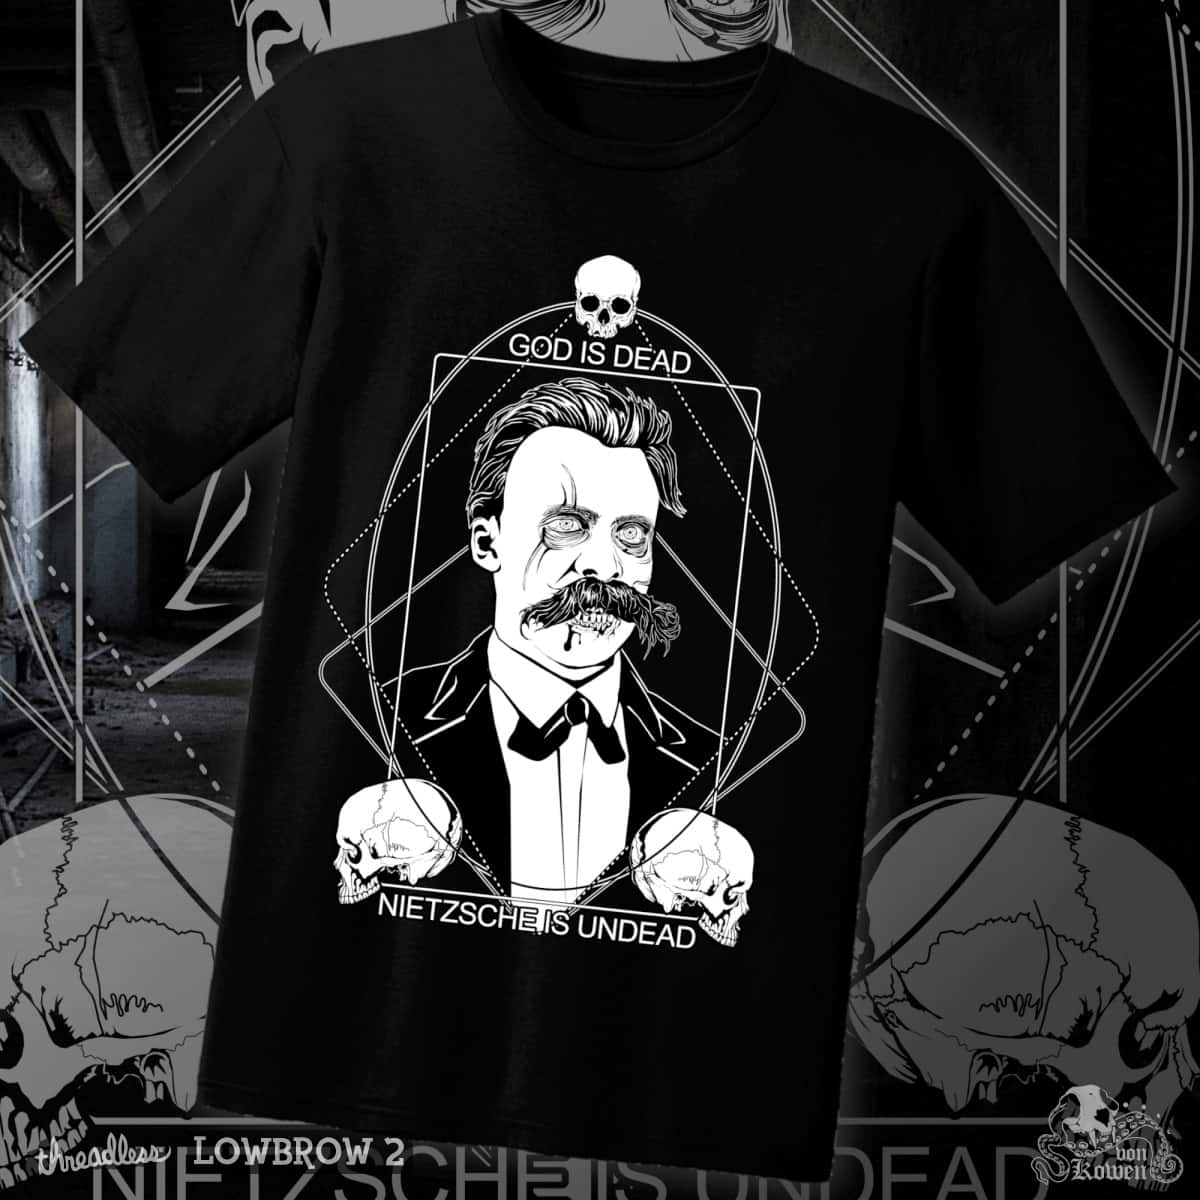 Nietzsche Zombie by vonKowen on Threadless